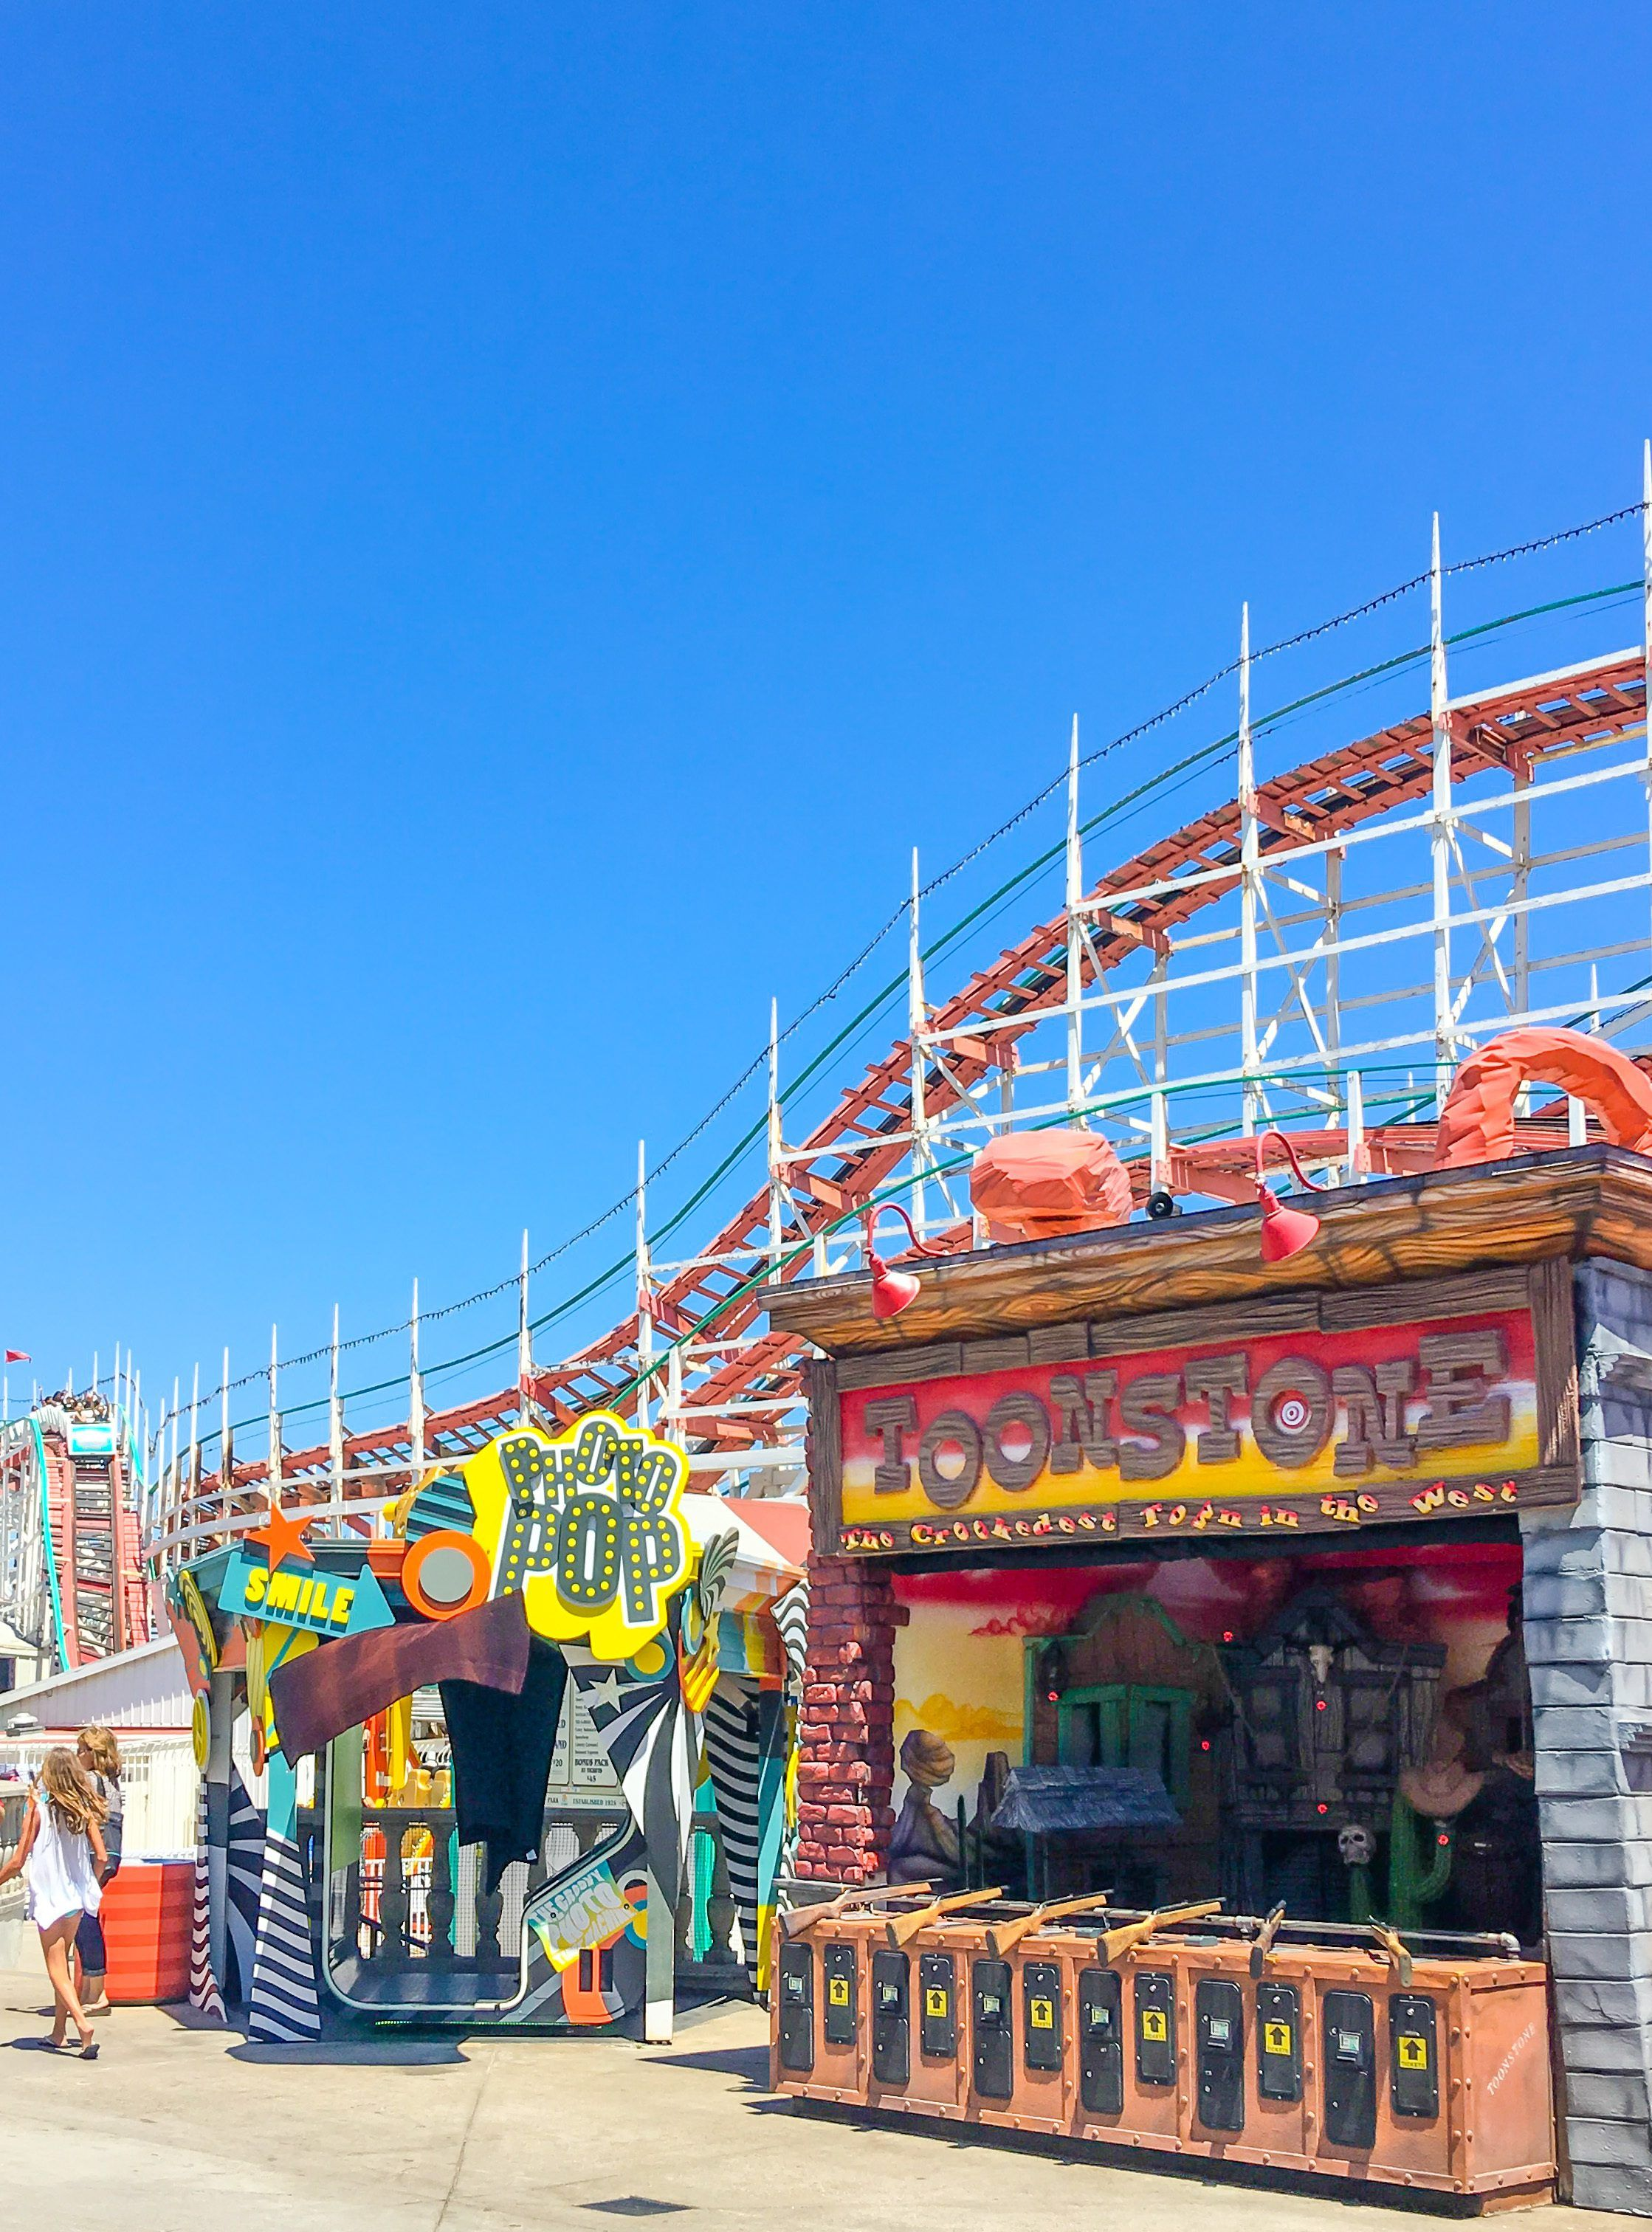 Belmont Park is a fun seaside amusement park for kids located in San Diego on Mission Beach.